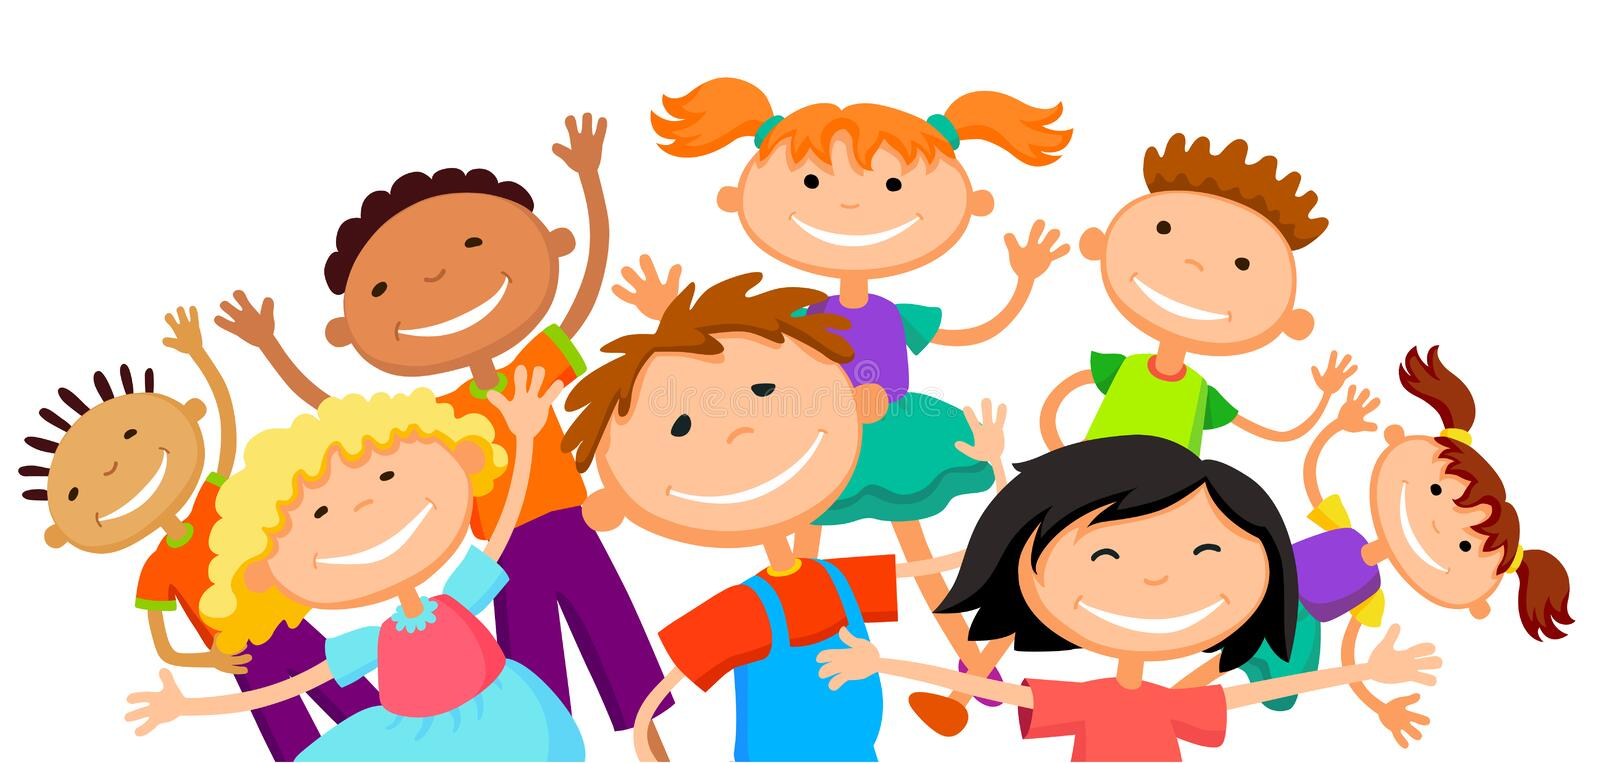 Group of children kids are jumping joyful white background bunner cartoon funny vector character. illustration royalty free illustration